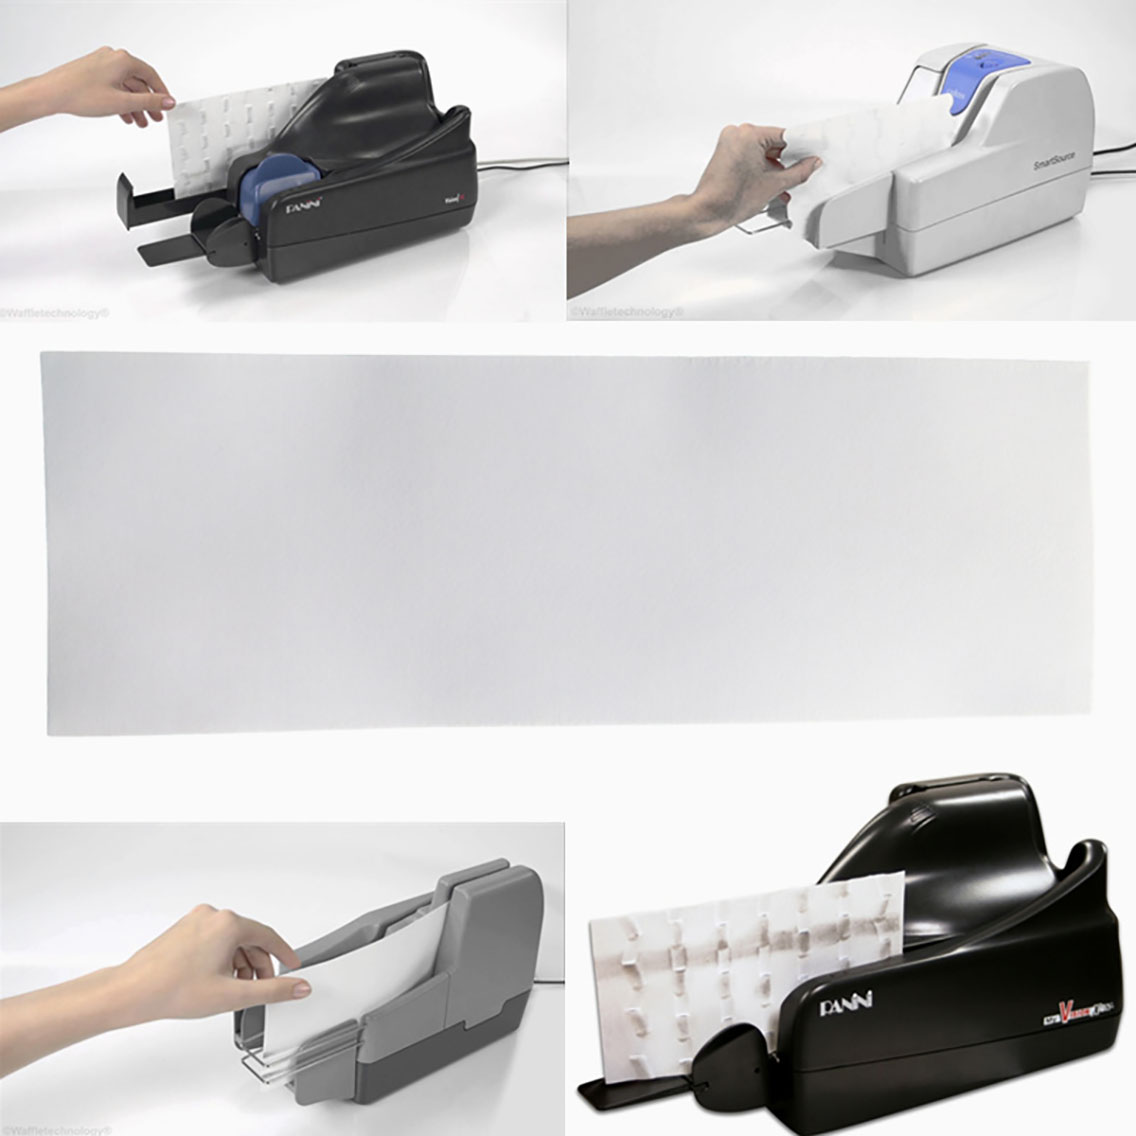 high quality check reader cleaning card broader width supplier for Digital Check TellerScan-6